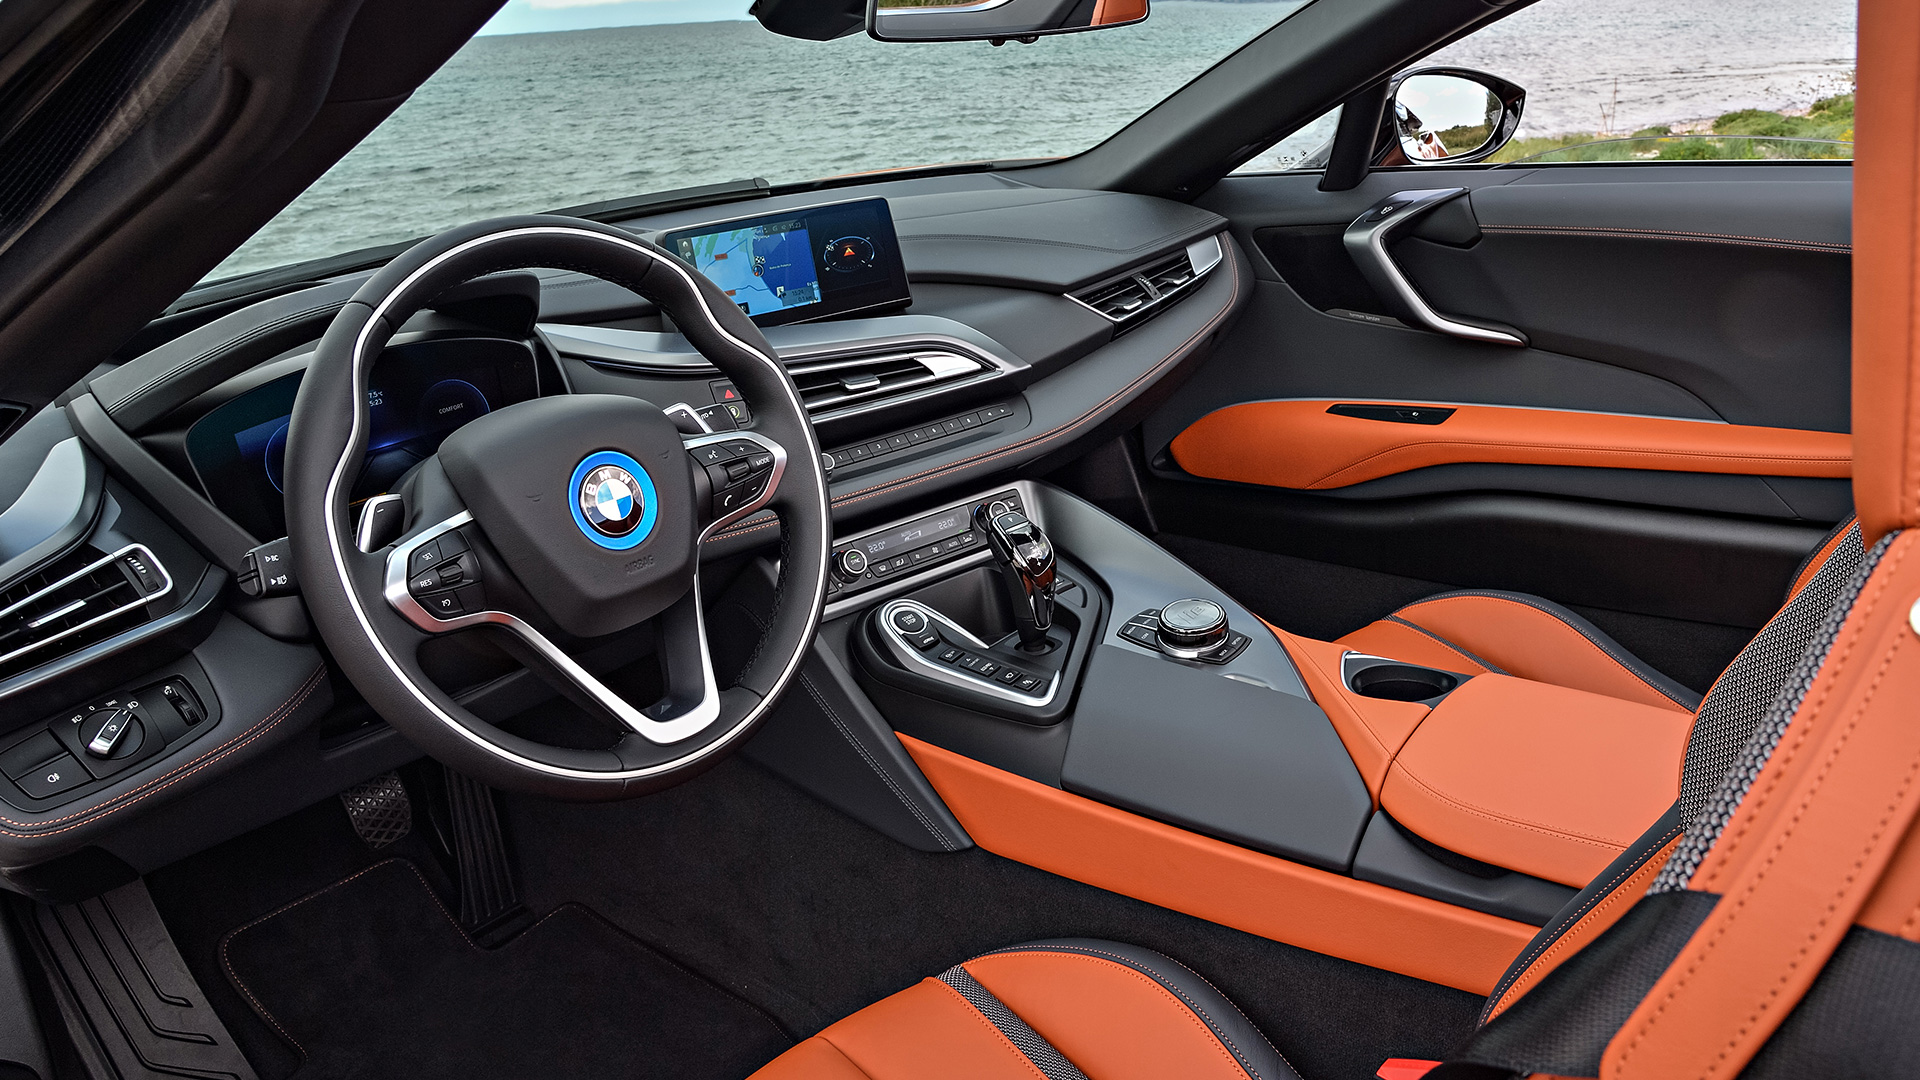 Bmw I8 2018 Roadster Exterior Car Photos Overdrive